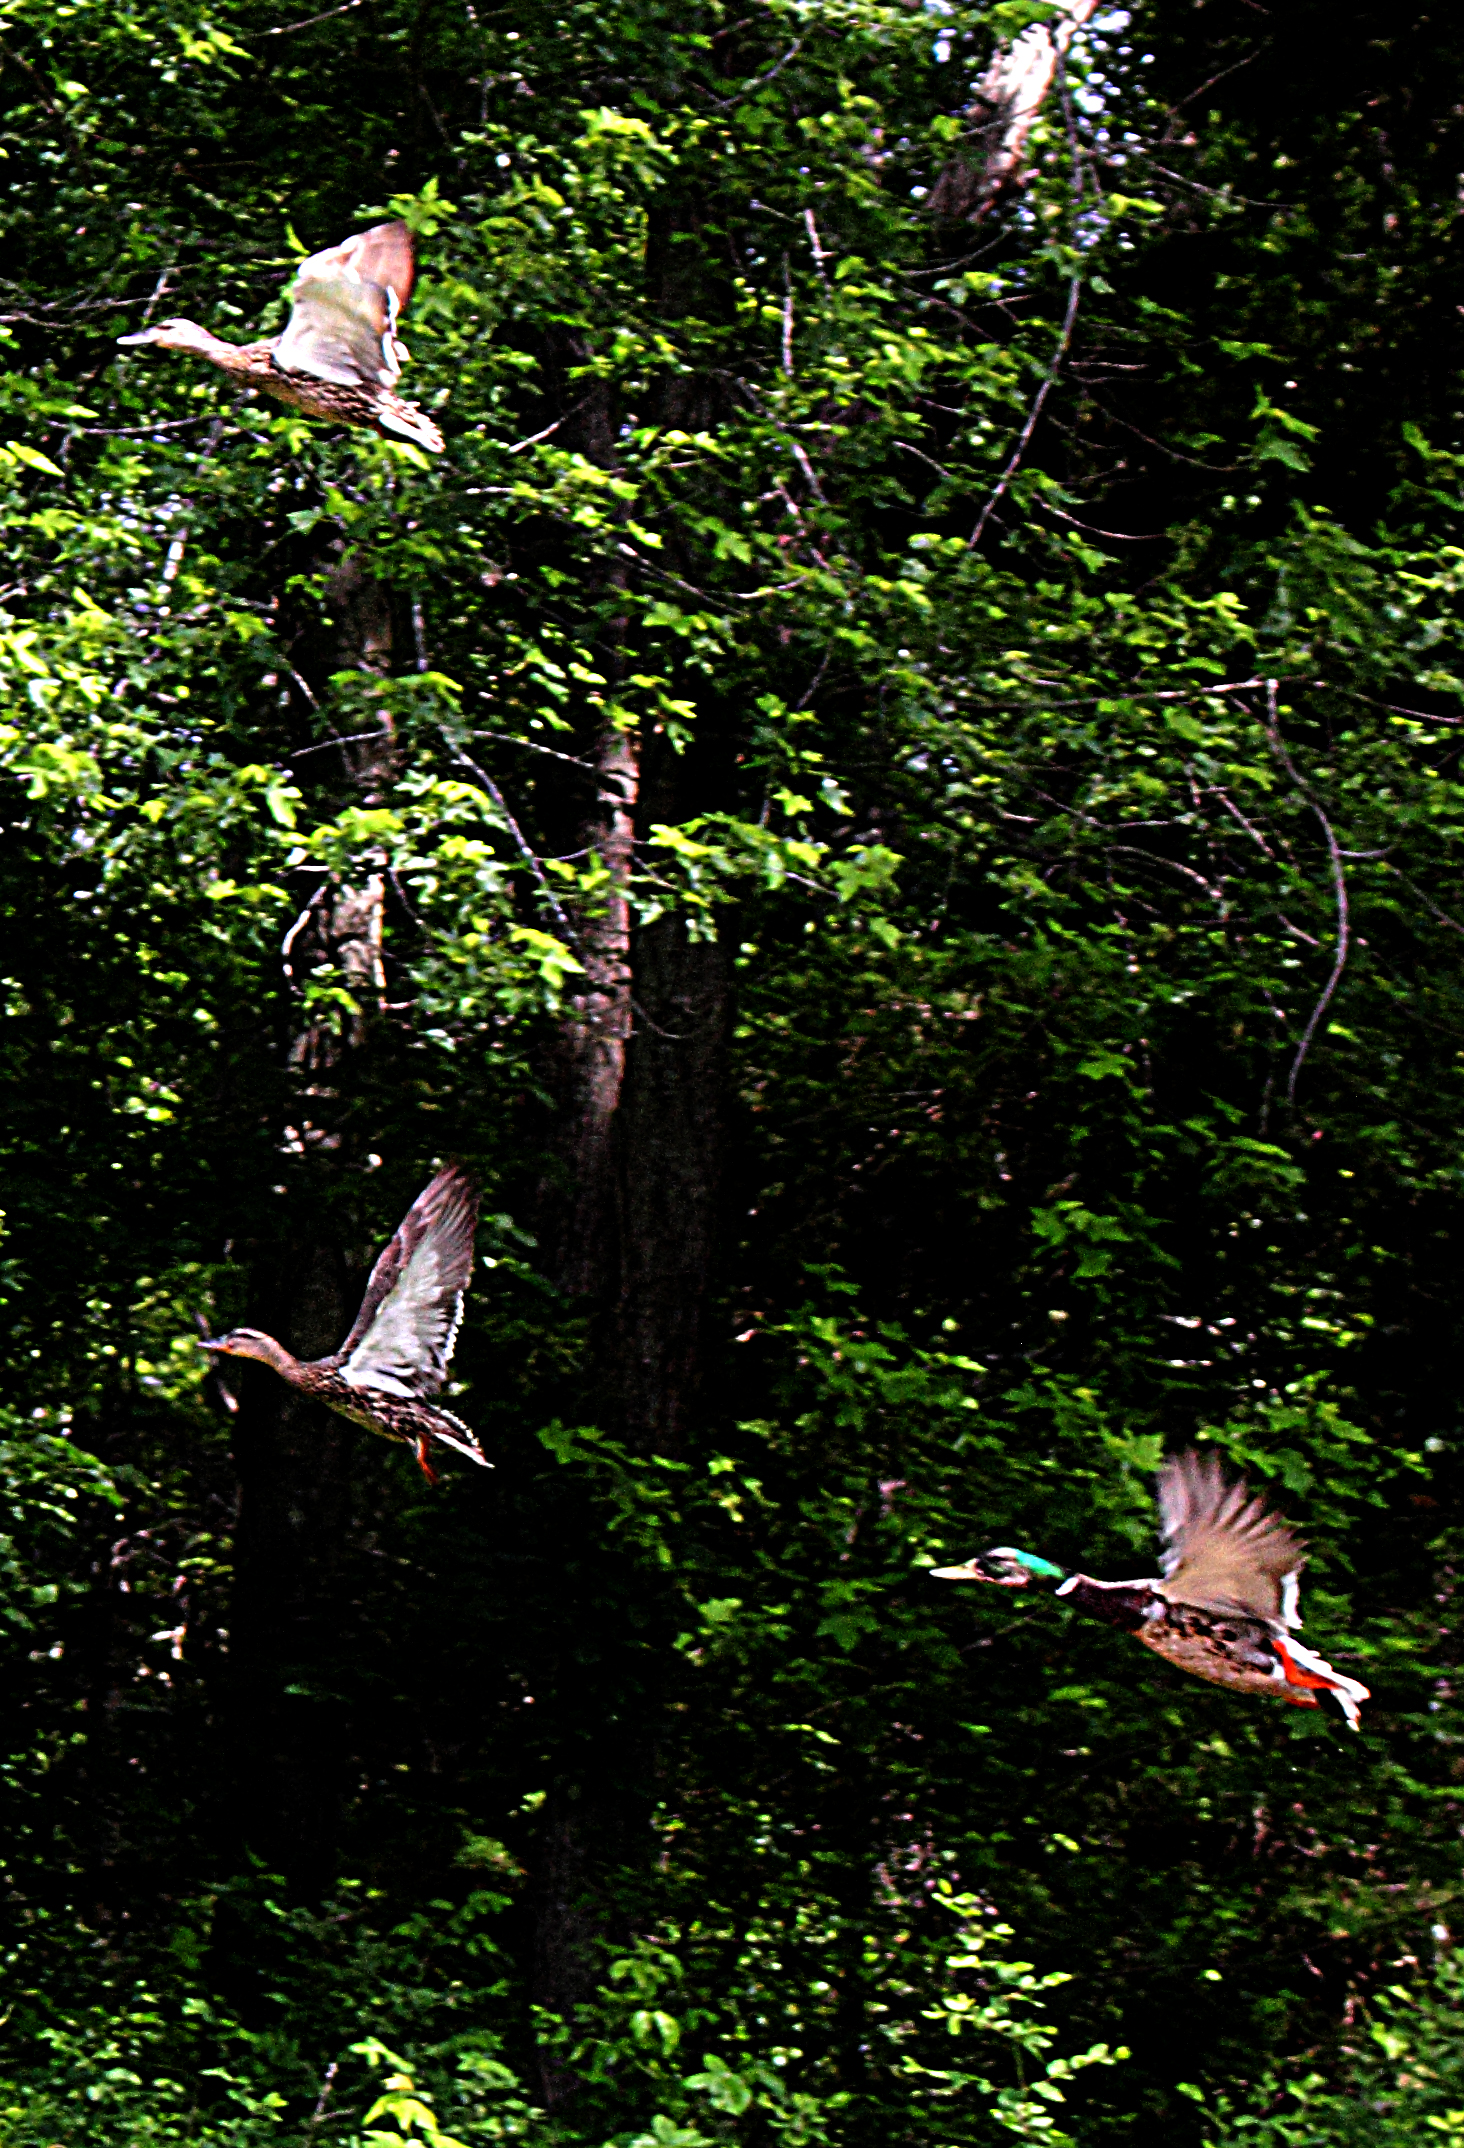 Figure 1 - Ducks taking flight, Concord, MA (c) DE Wolf 2013